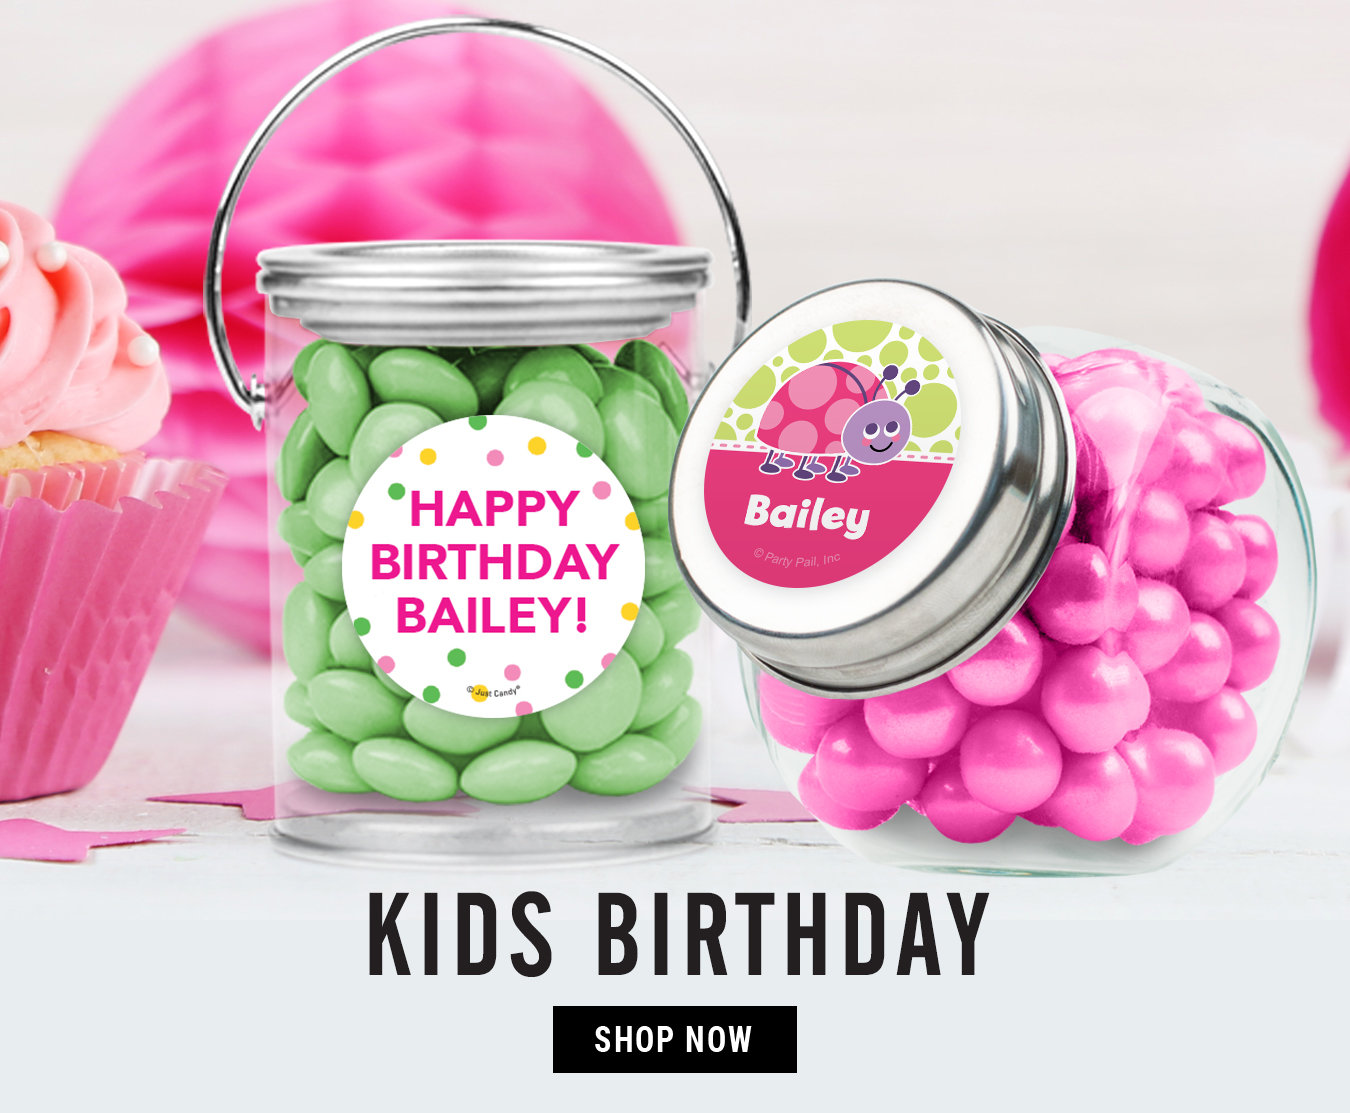 Shop Kids Birthday